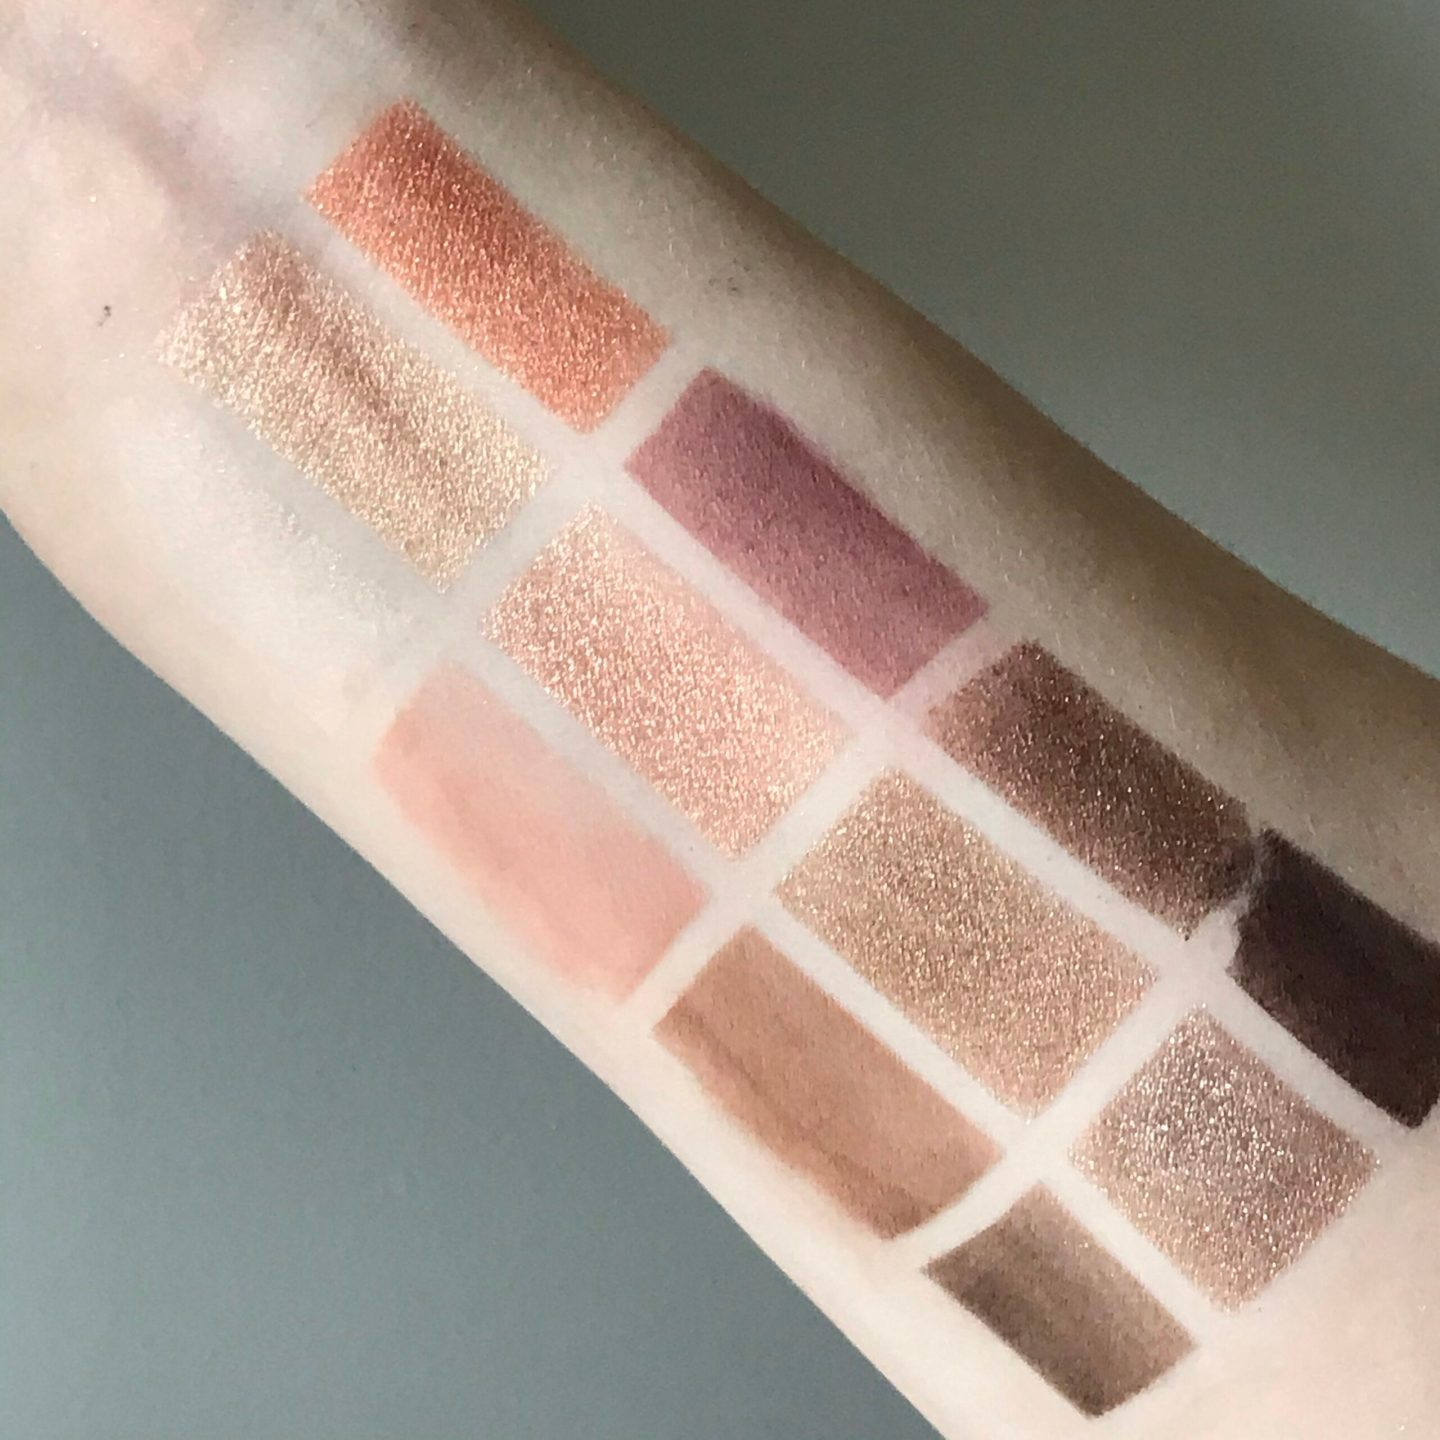 Bobbi Brown Nude Drama II Palette Swatches and Review